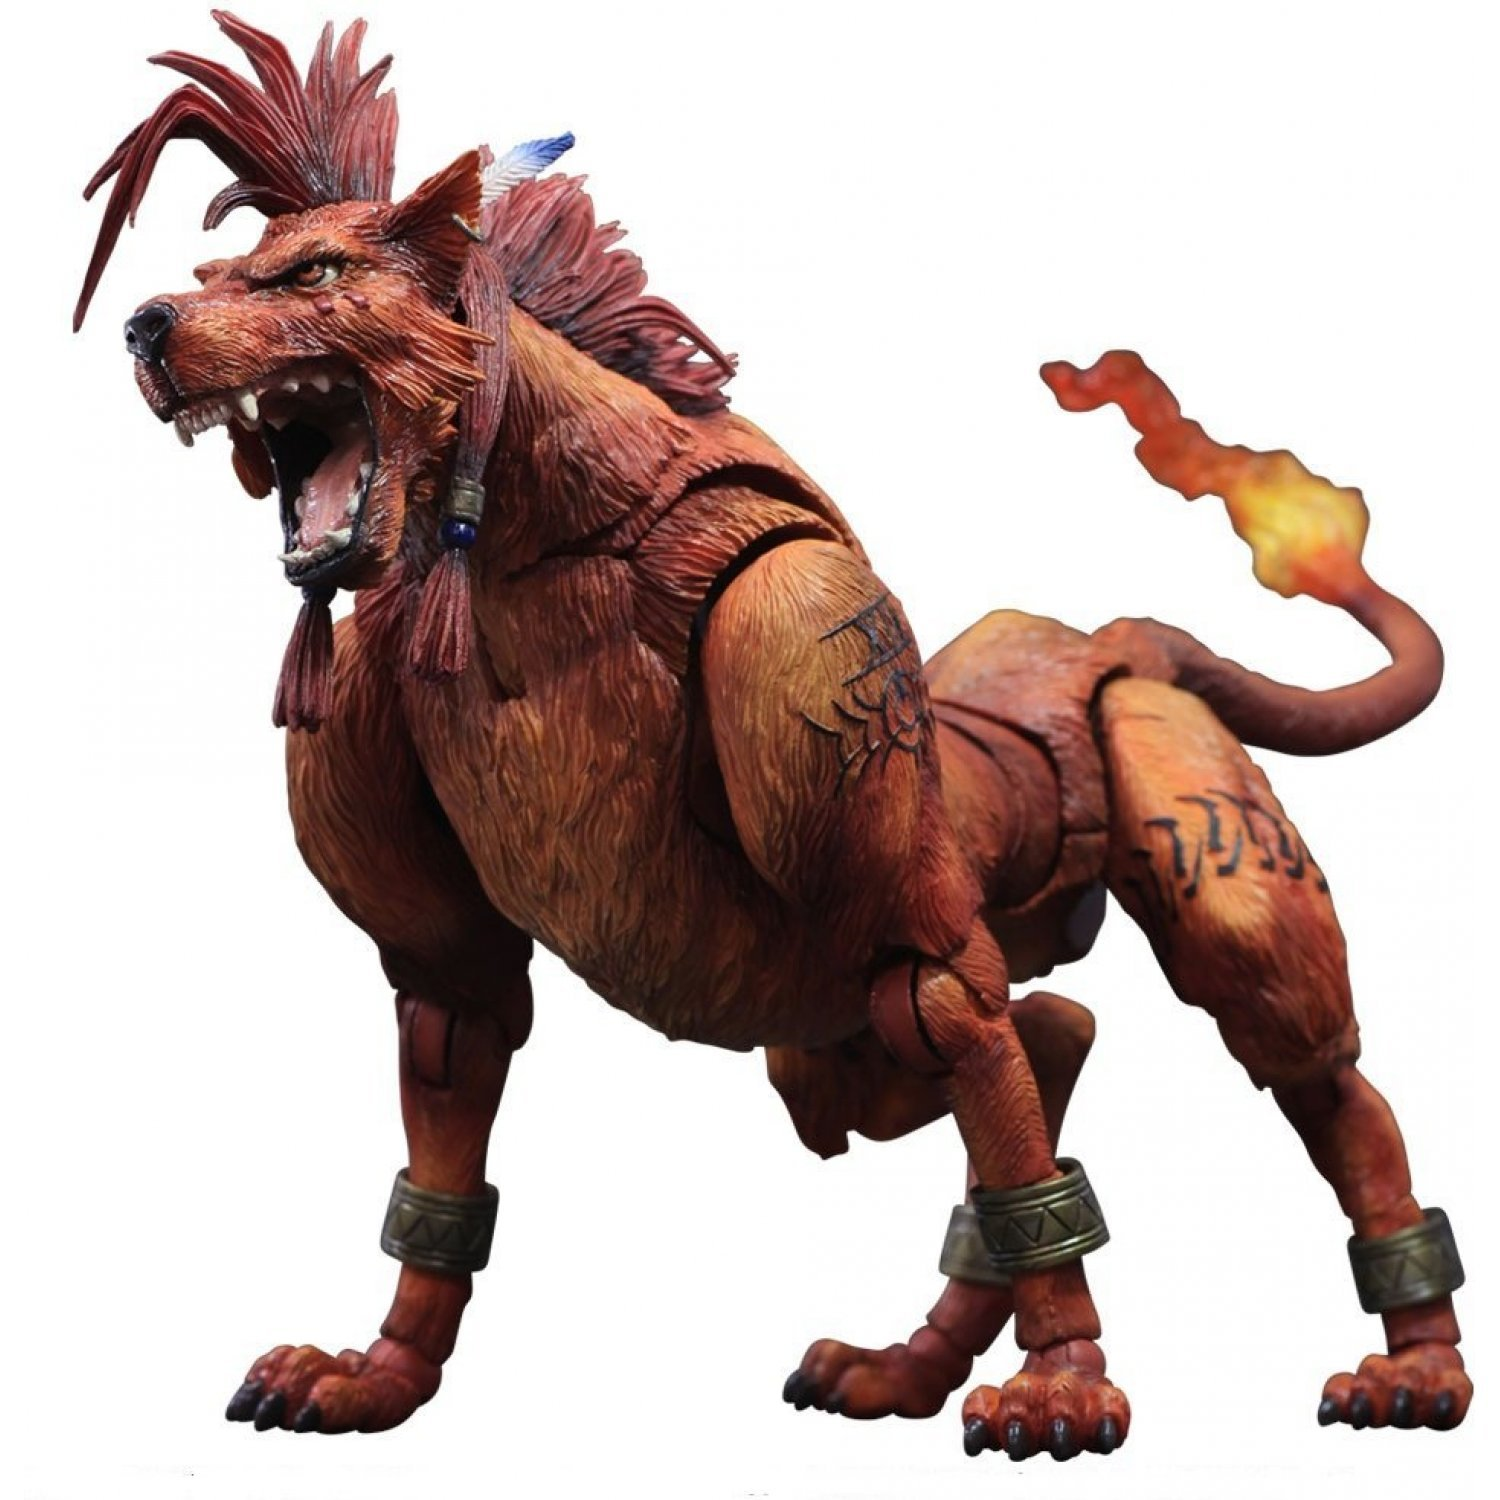 Final Consumers: Final Fantasy VII Advent Children Play Arts Kai: Red XIII